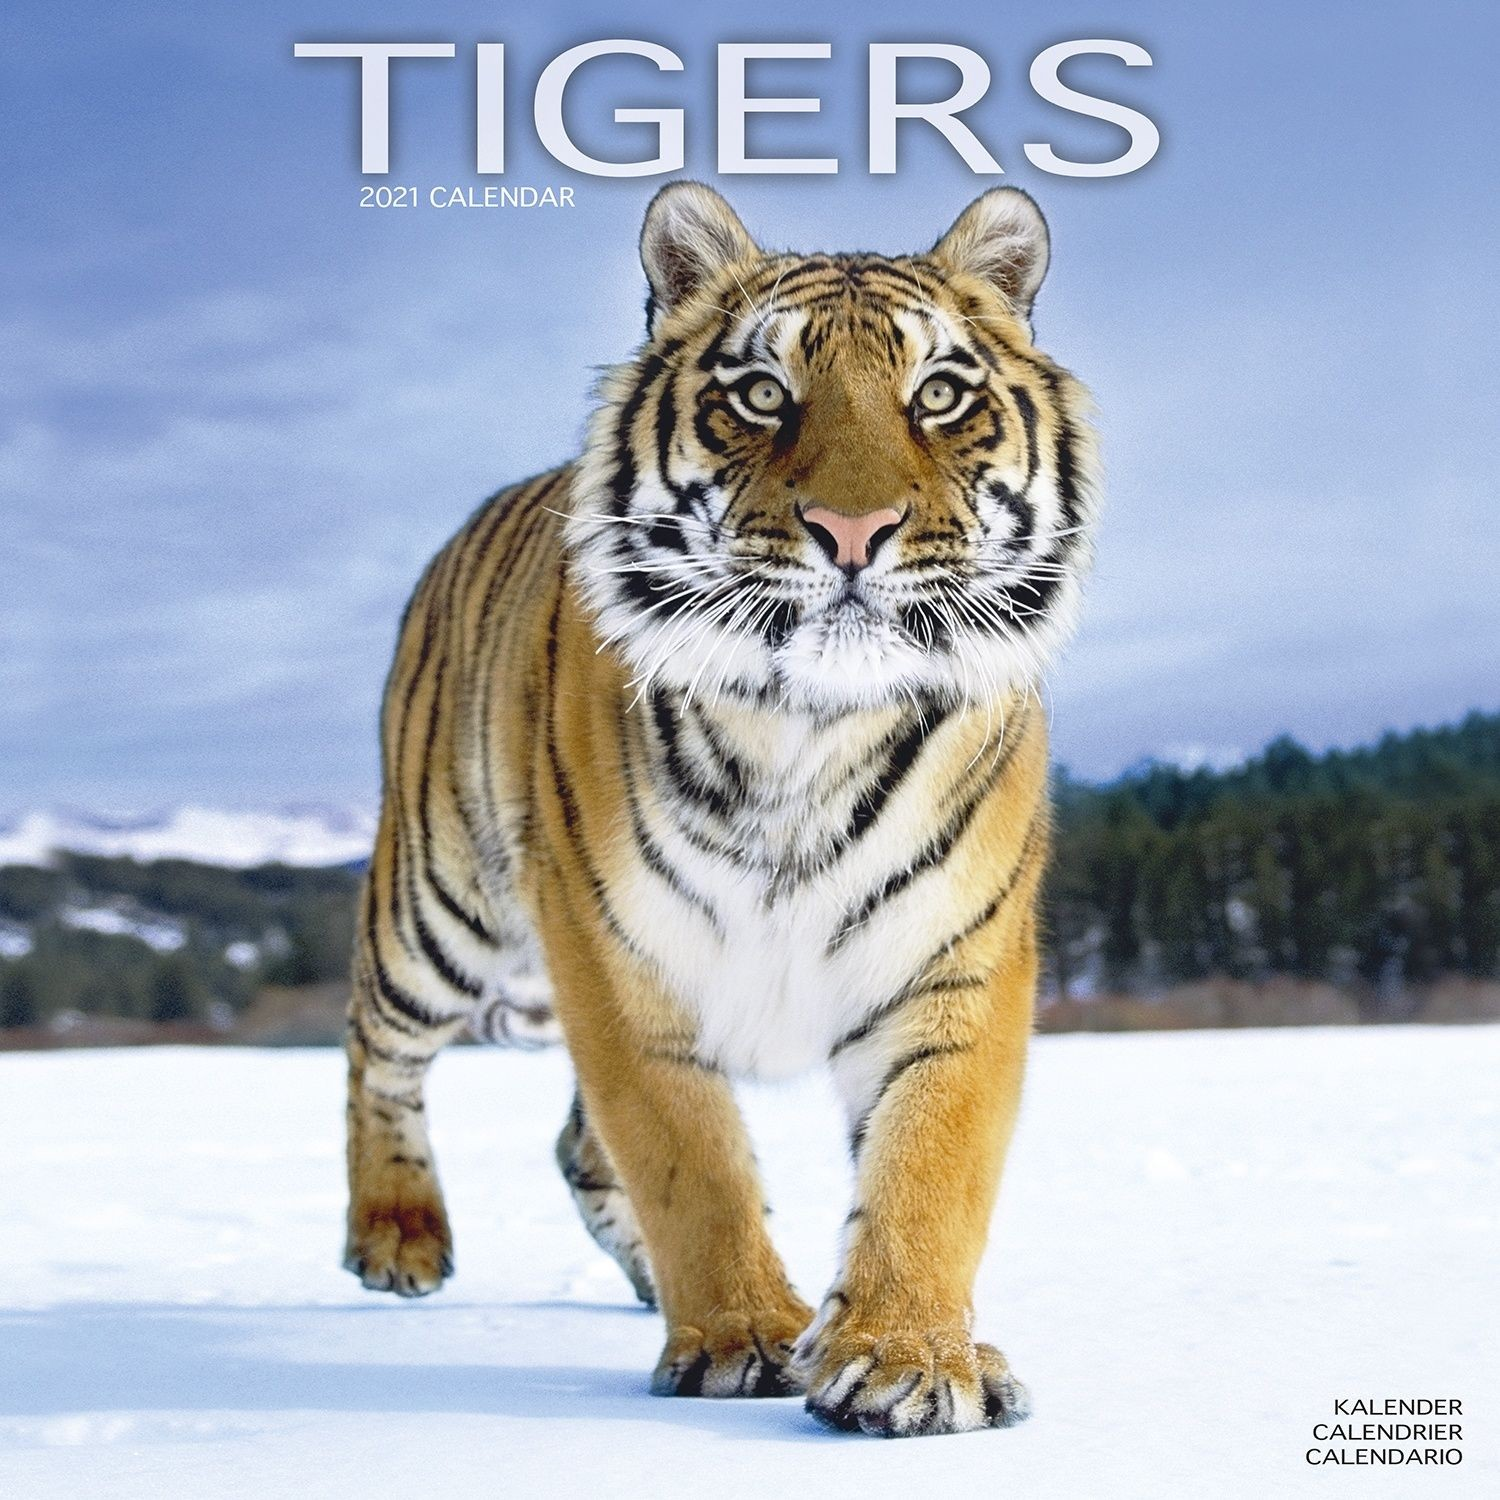 Tigers Wall Calendar 2021 by Avonside